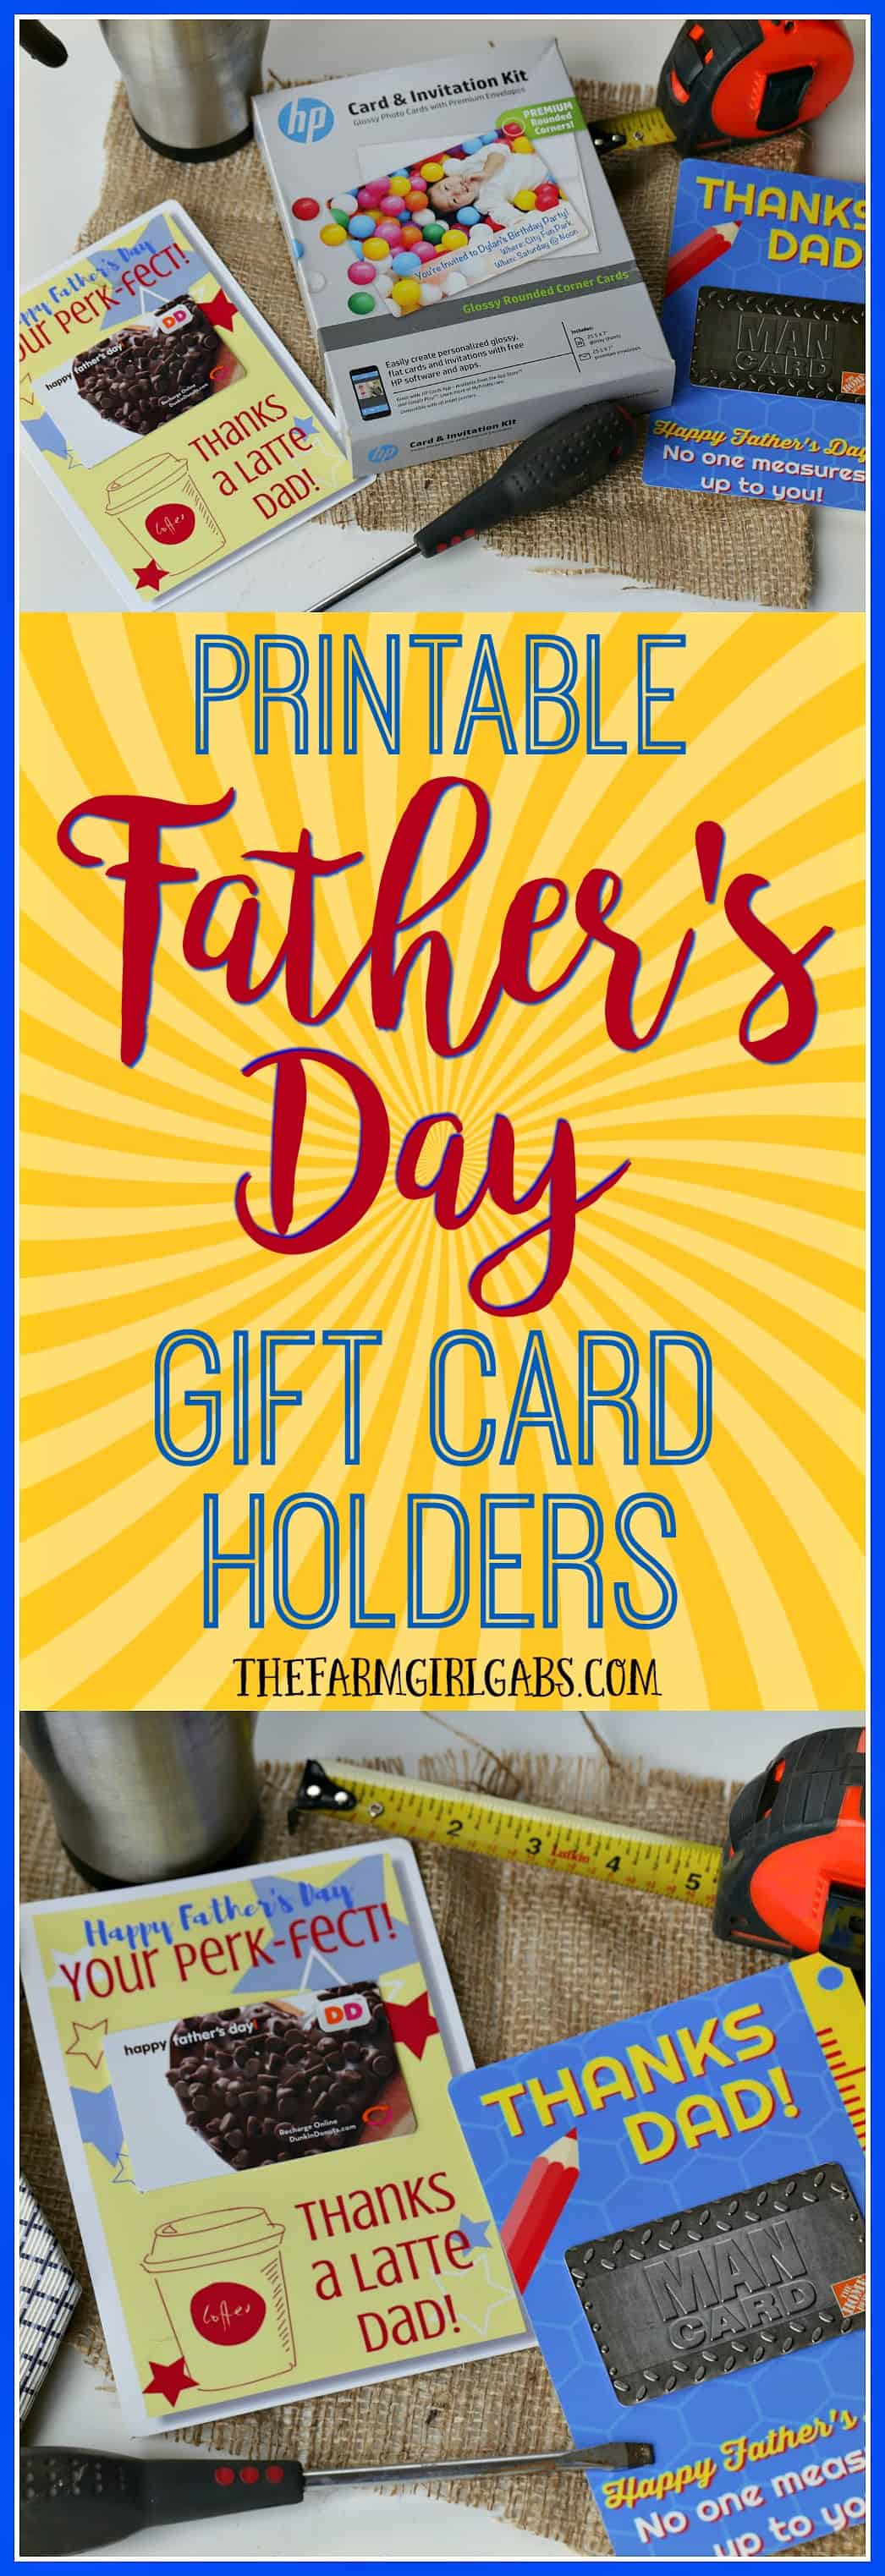 Treat dad to something special this Father's Day. These Printable Father's Day Gift Card Holders are the perfect gift idea!